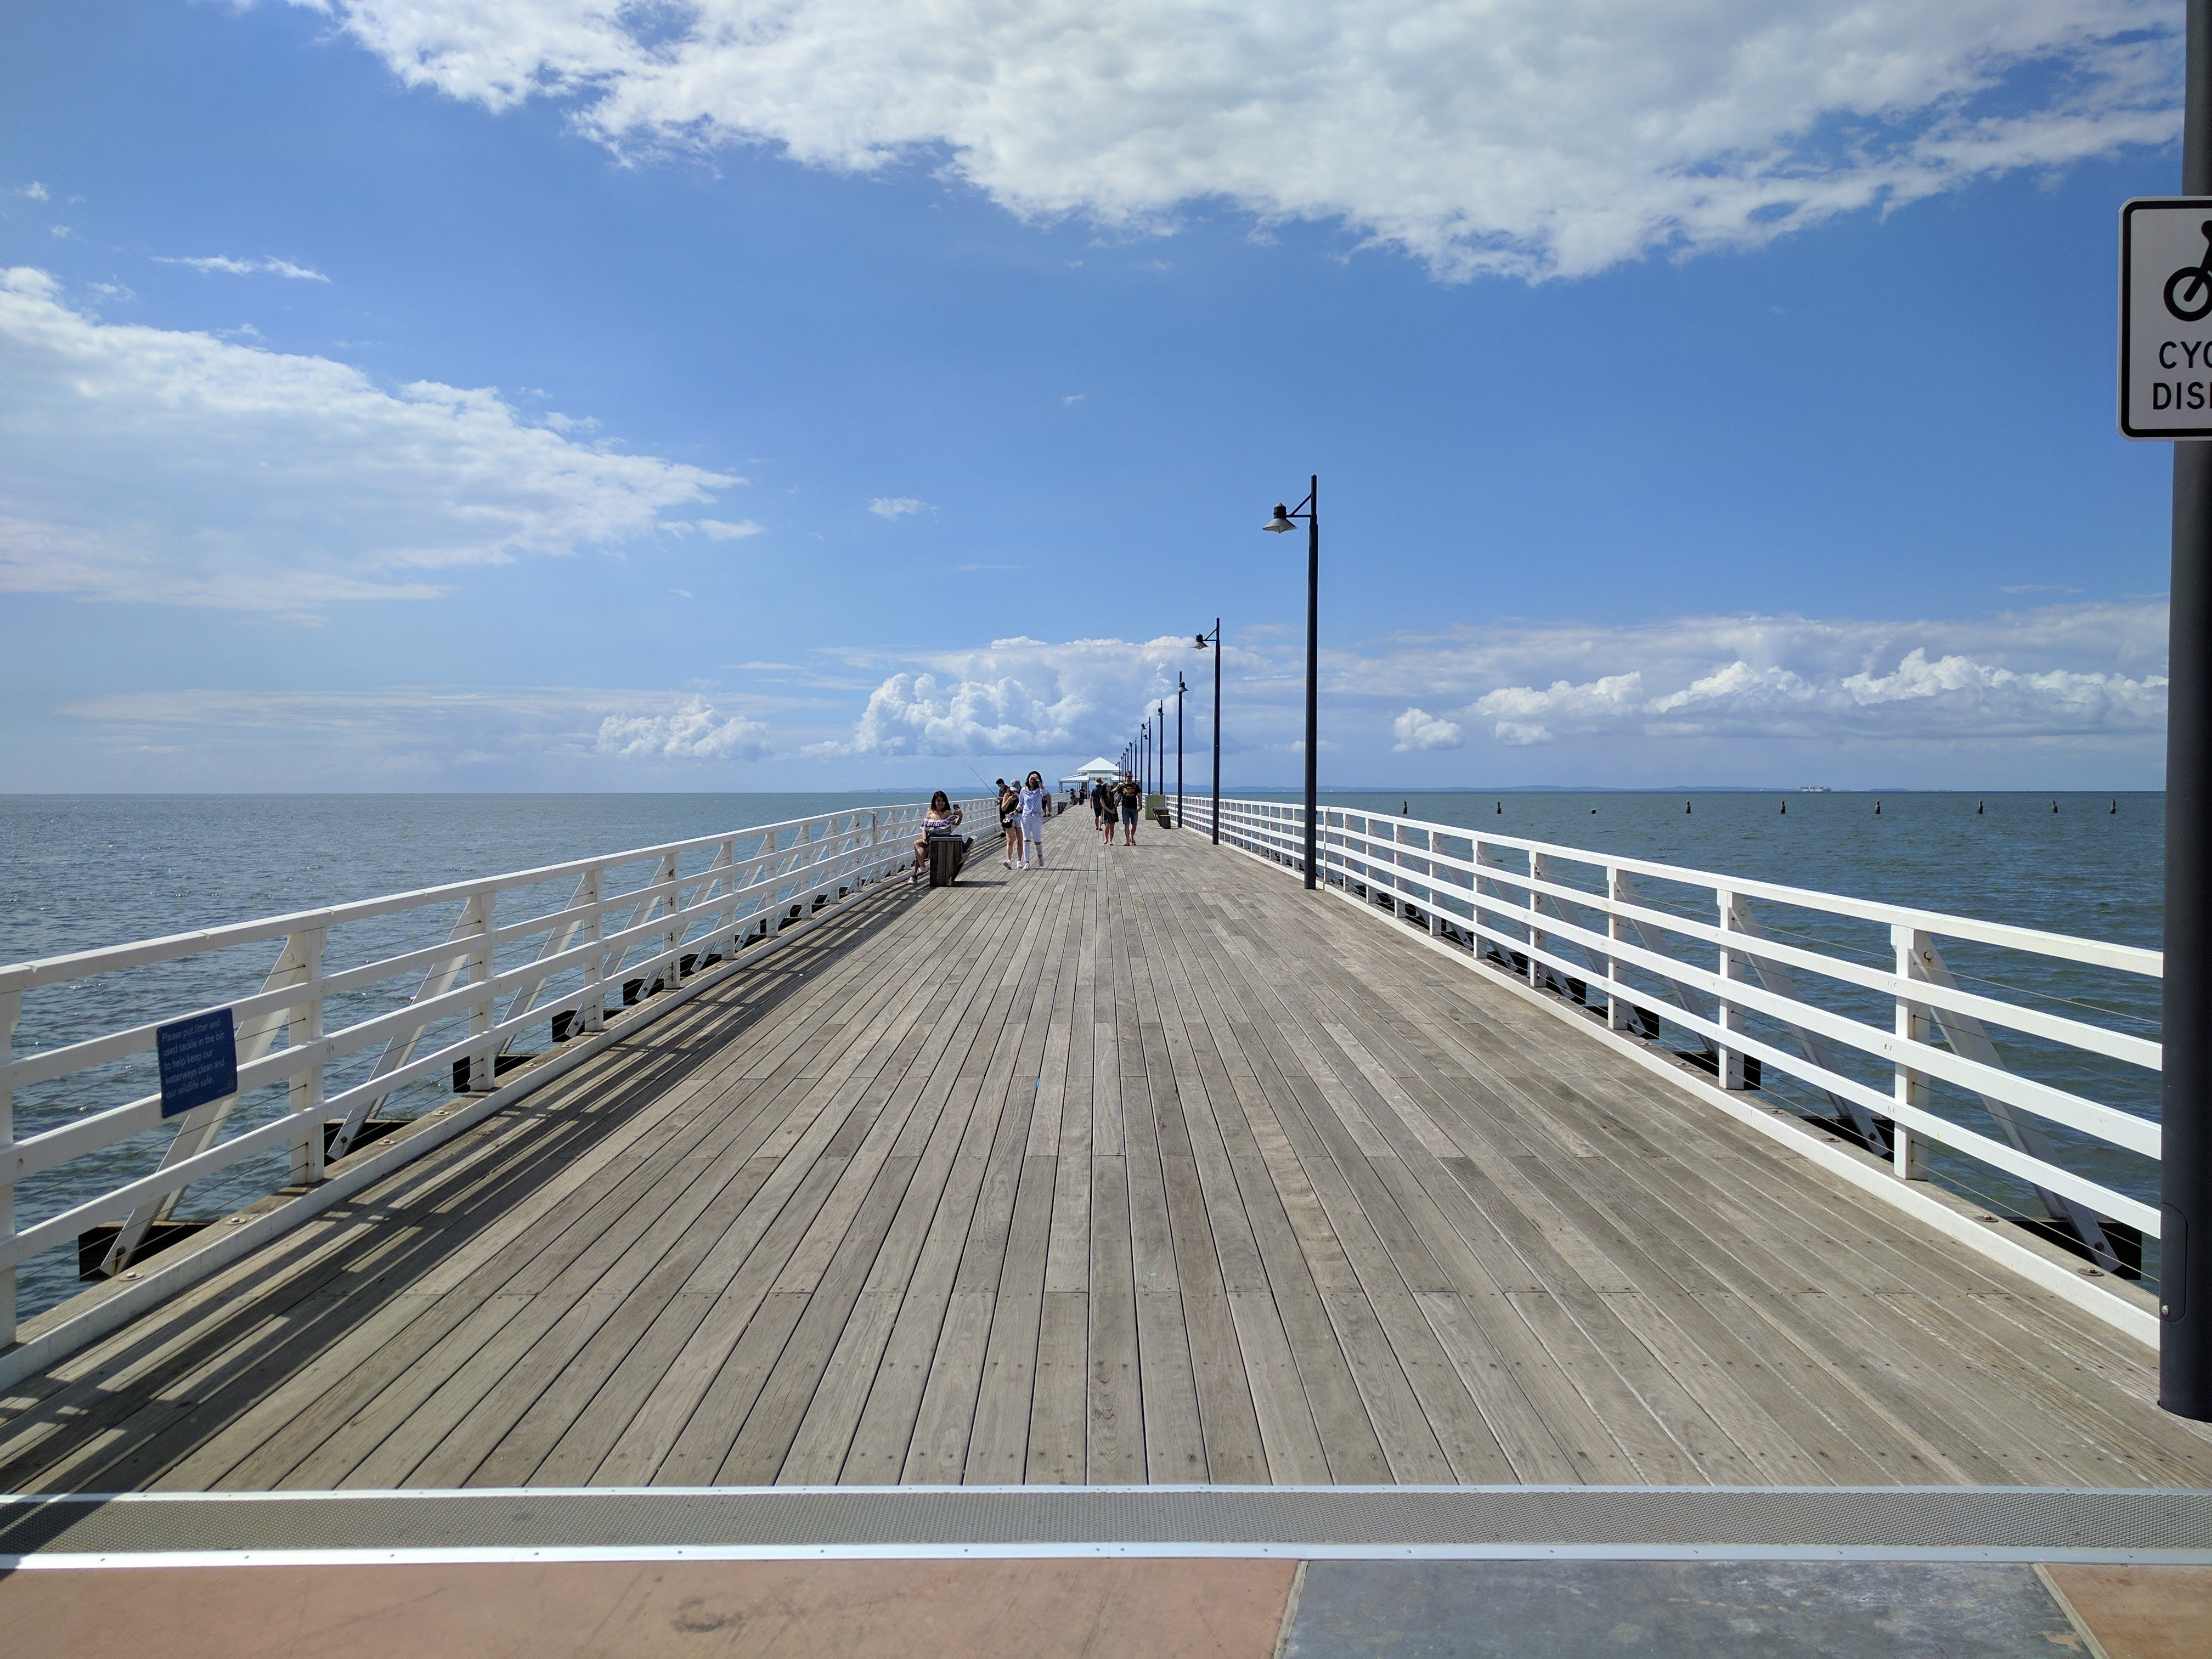 Sandgate - Find Attractions